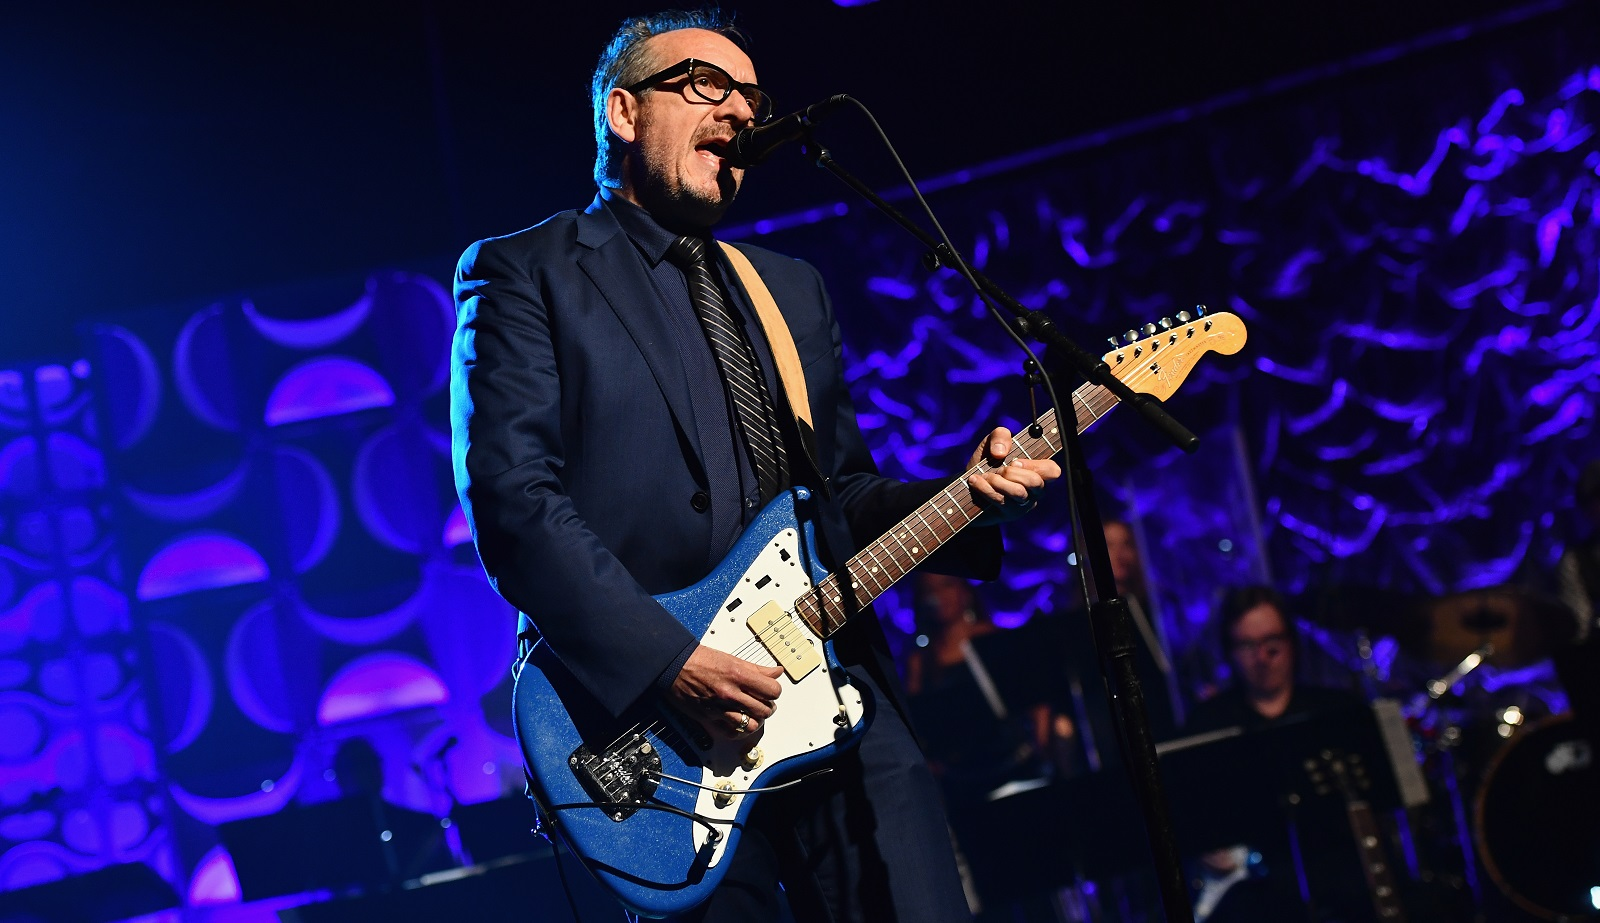 Elvis Costello, pictured performing in New York City in June, played Shea's Performing Arts Center on Nov. 2, 2016. (Getty Images)